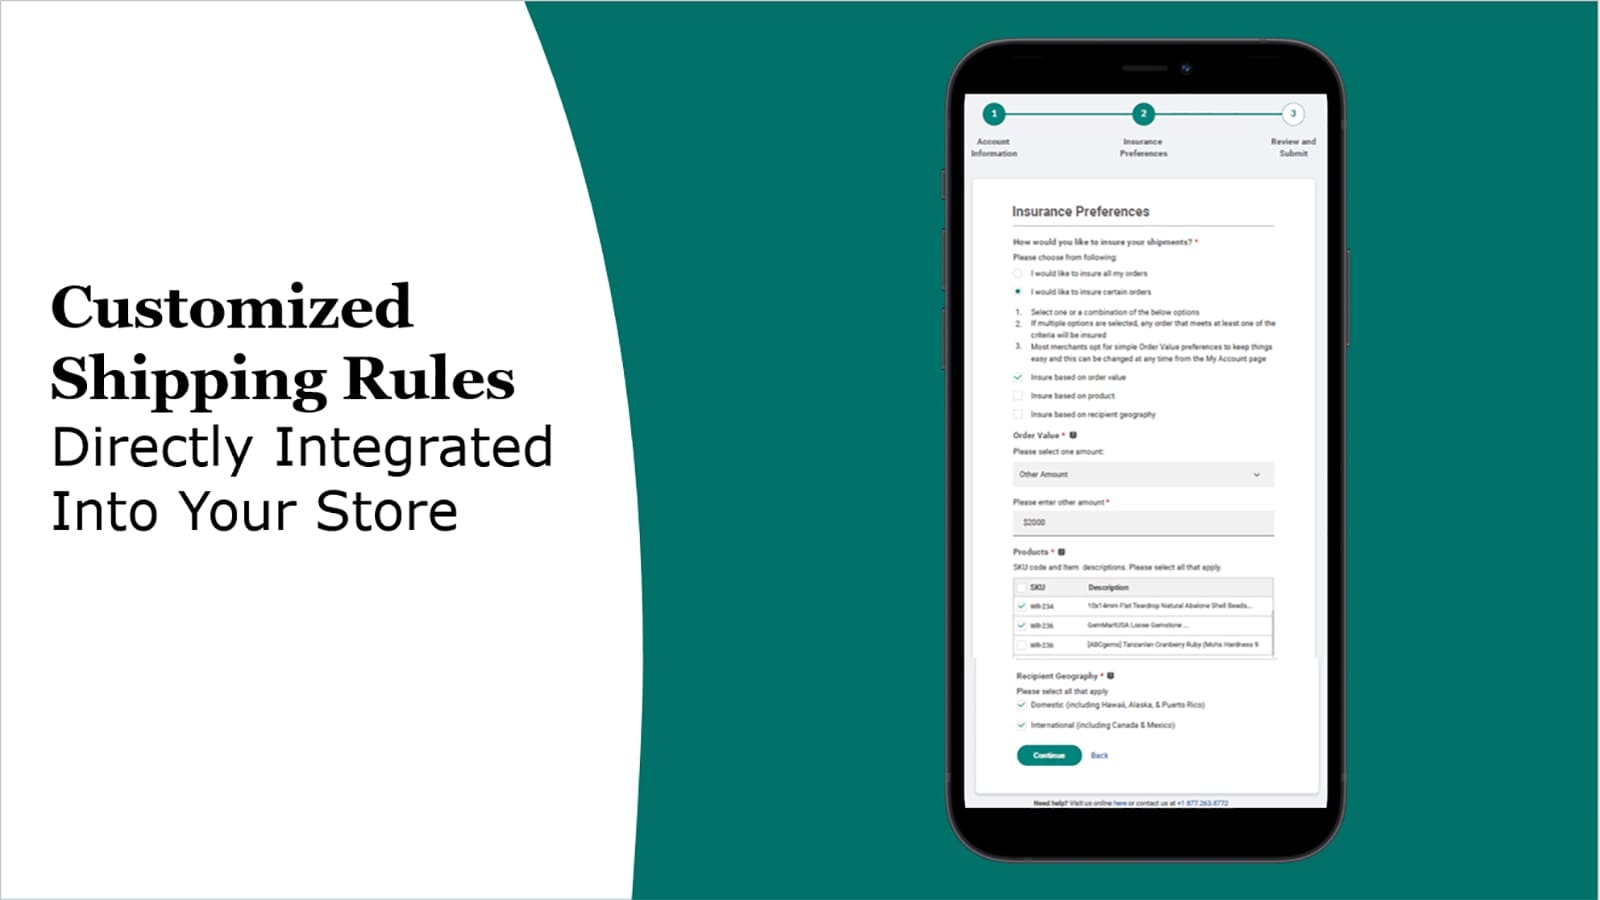 Customize shipping insurance rules based on your ecommerce needs